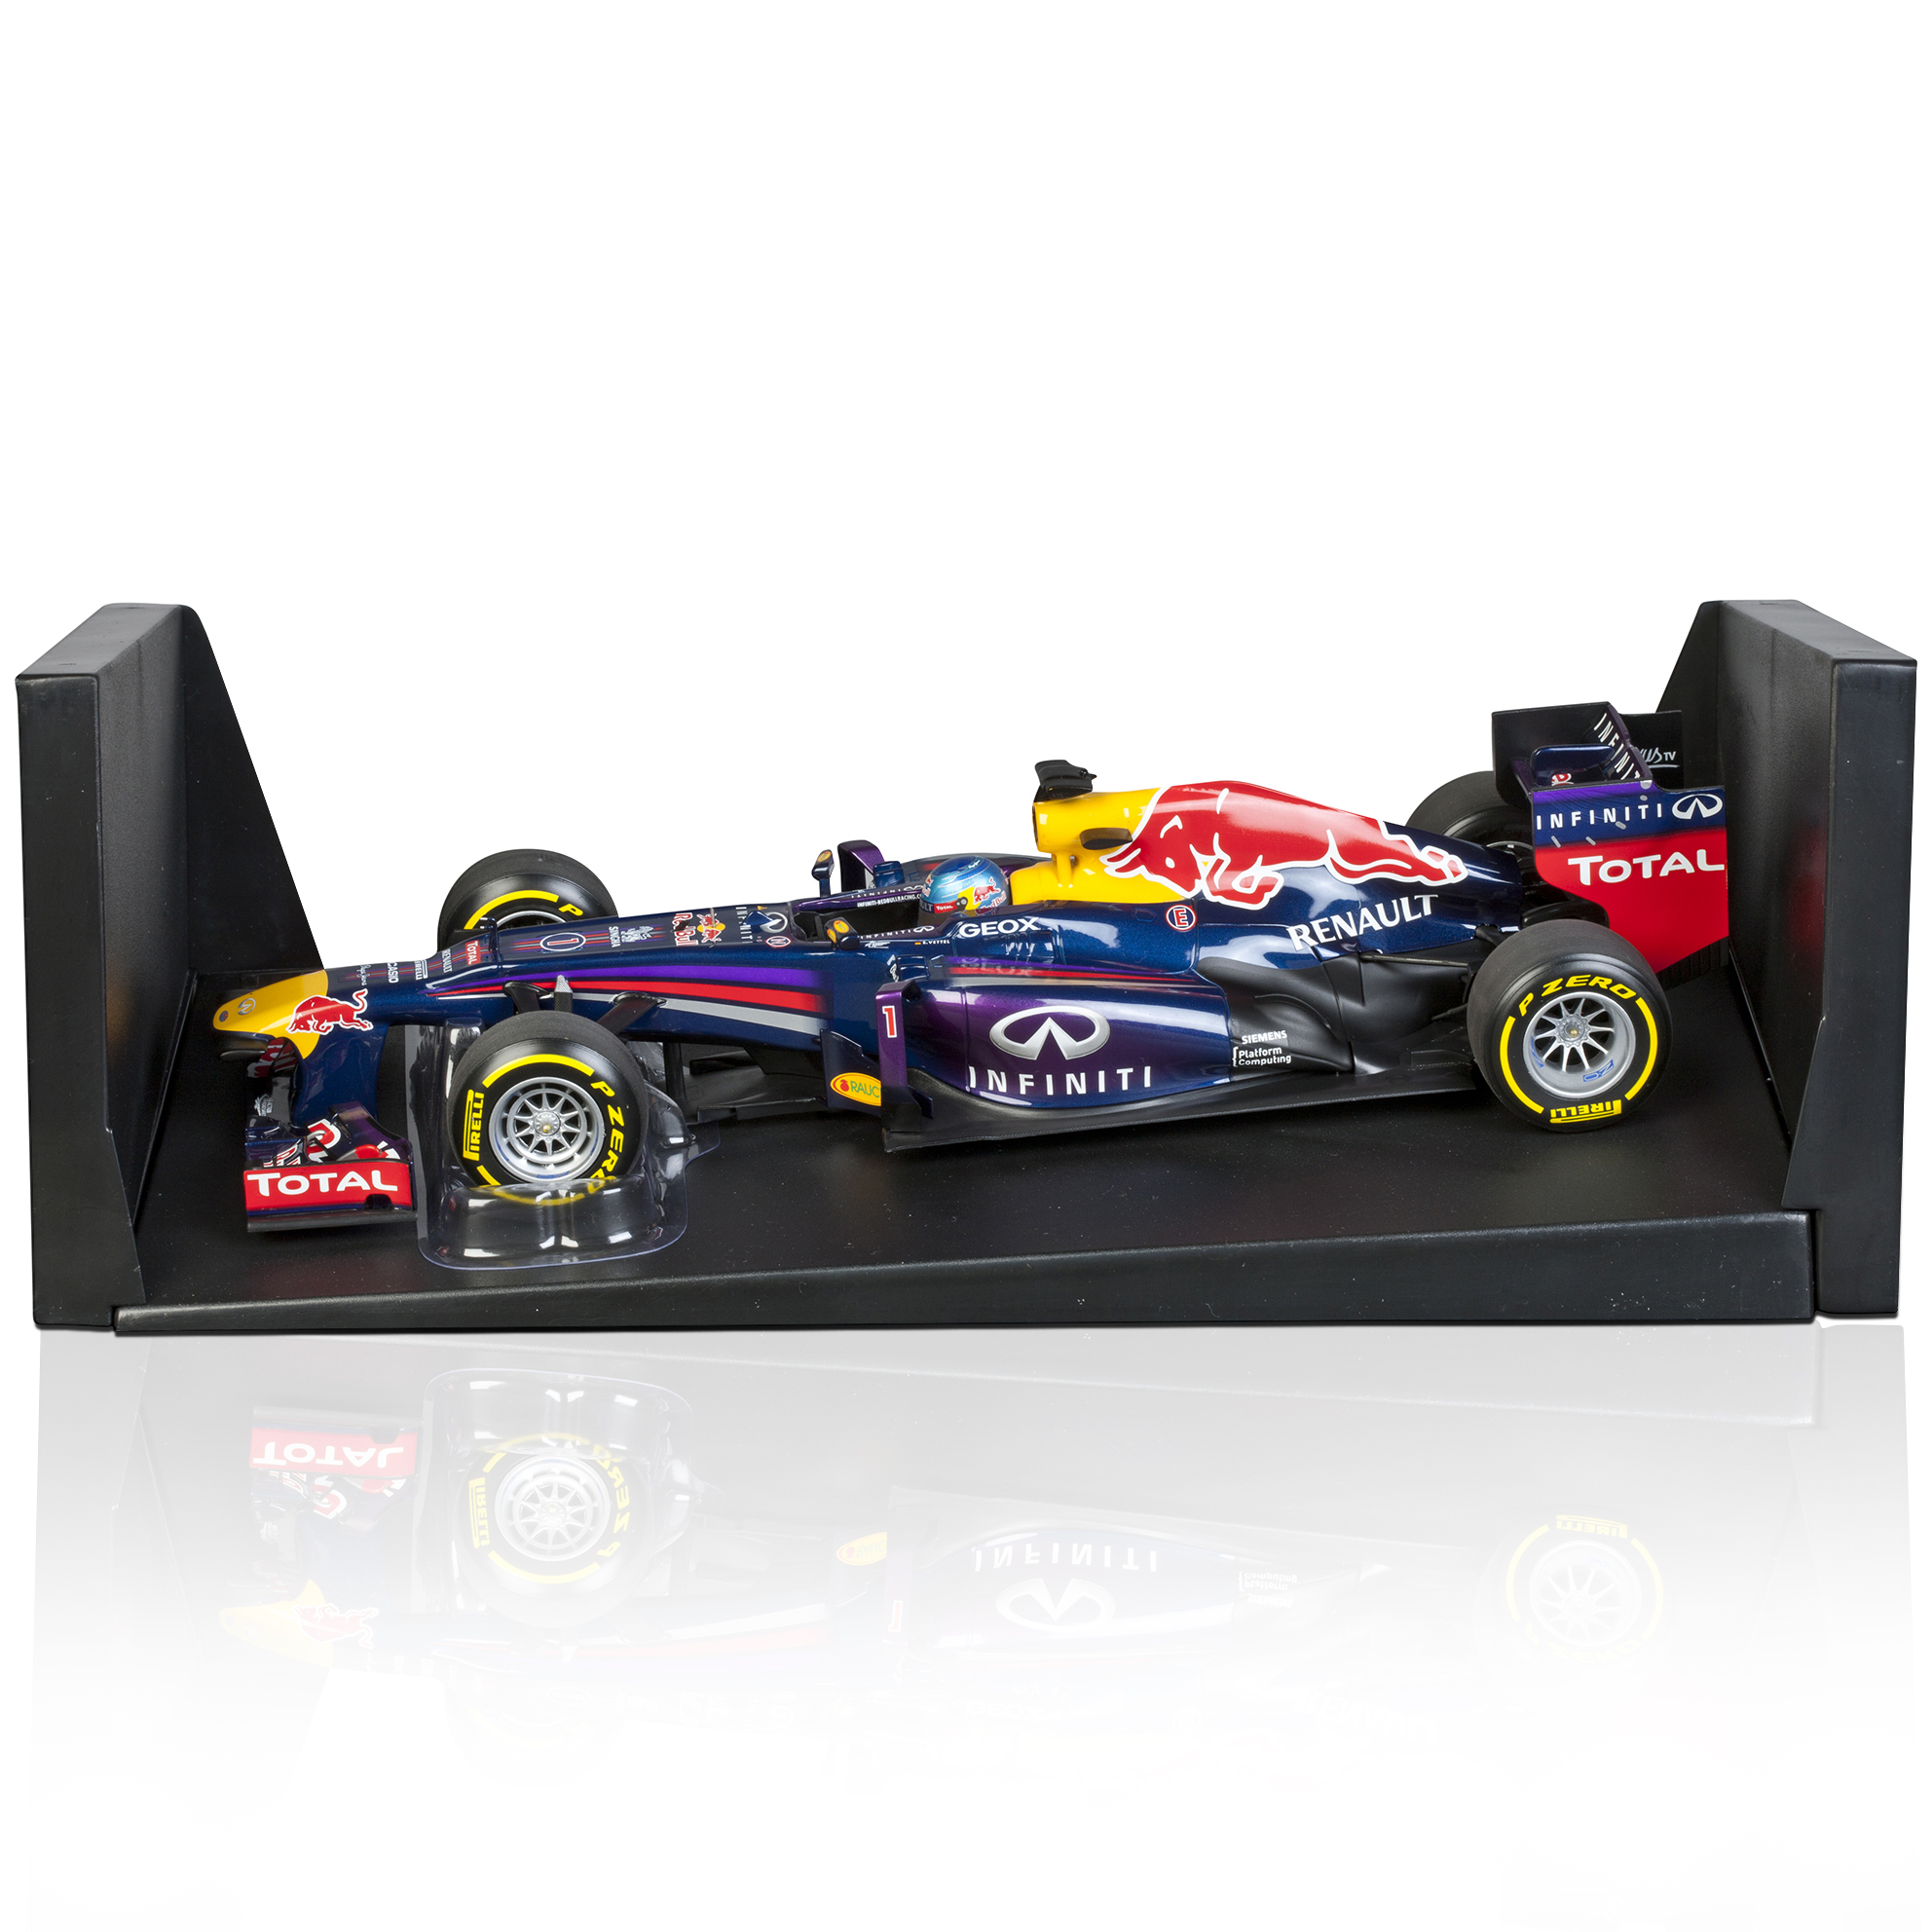 Infiniti Red Bull Racing RB9 Sebastian Vettel 2013 1:18 Scale